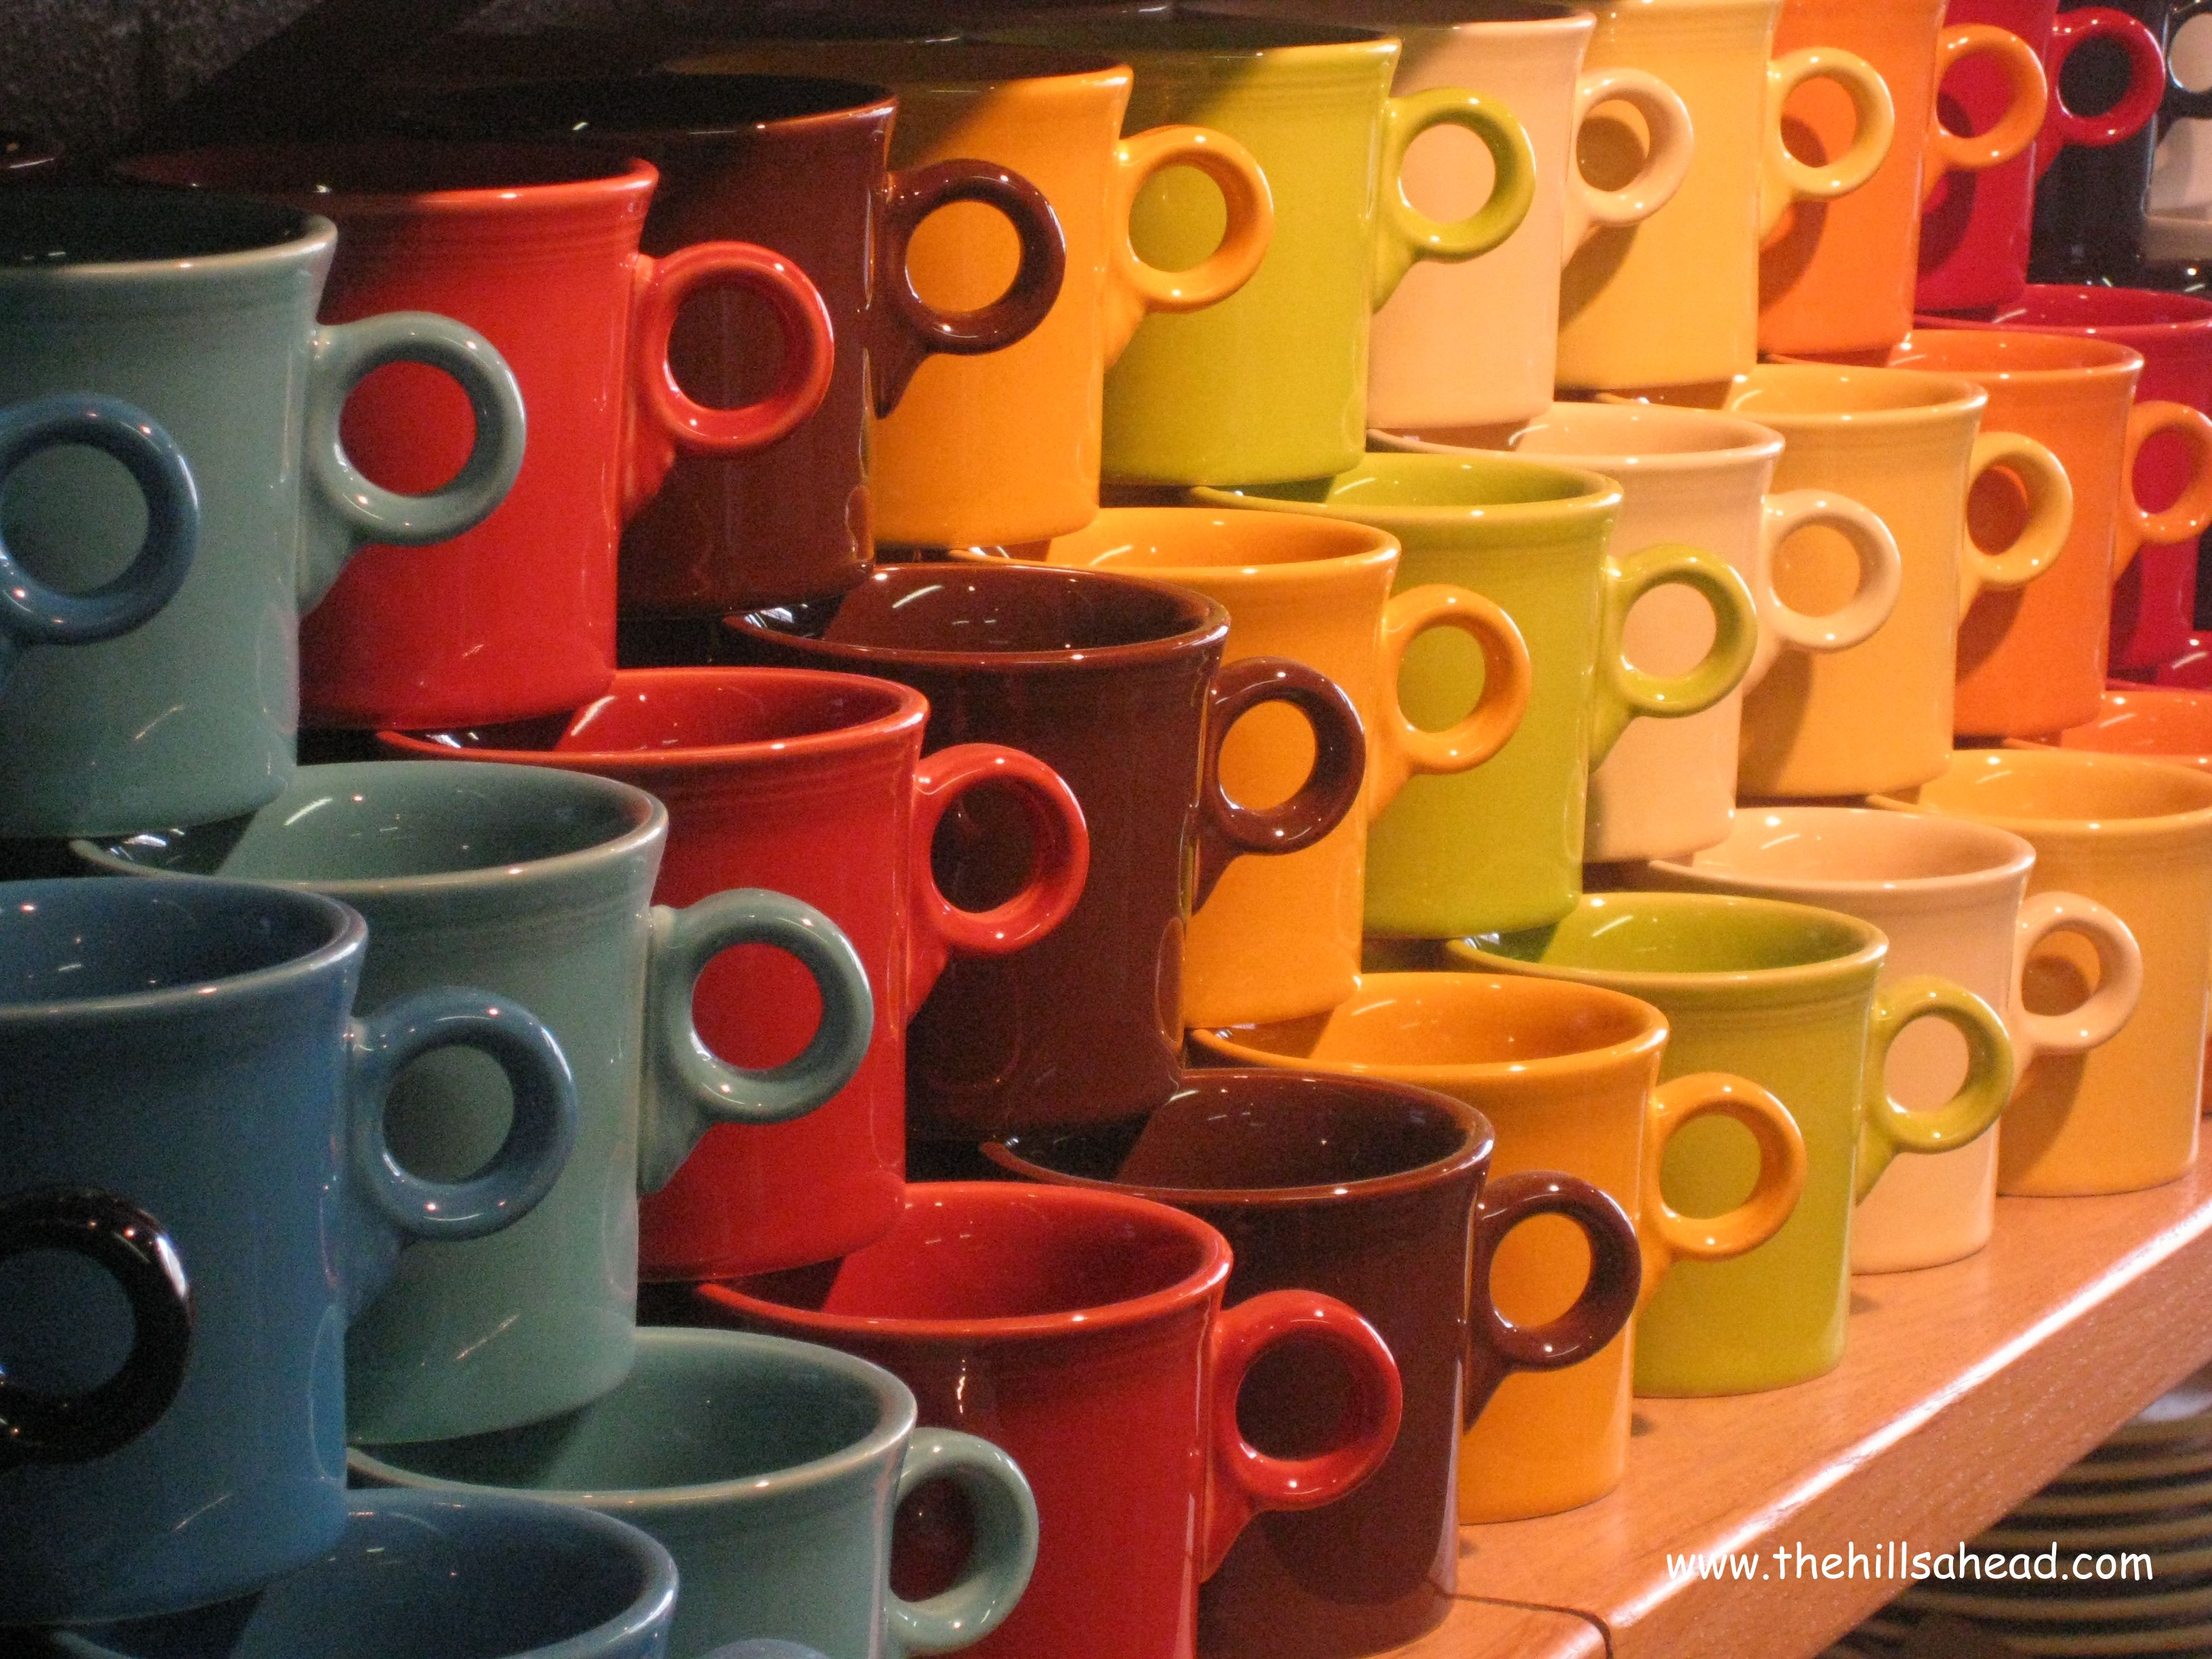 colorful mug by fiestaware for drinkware ideas